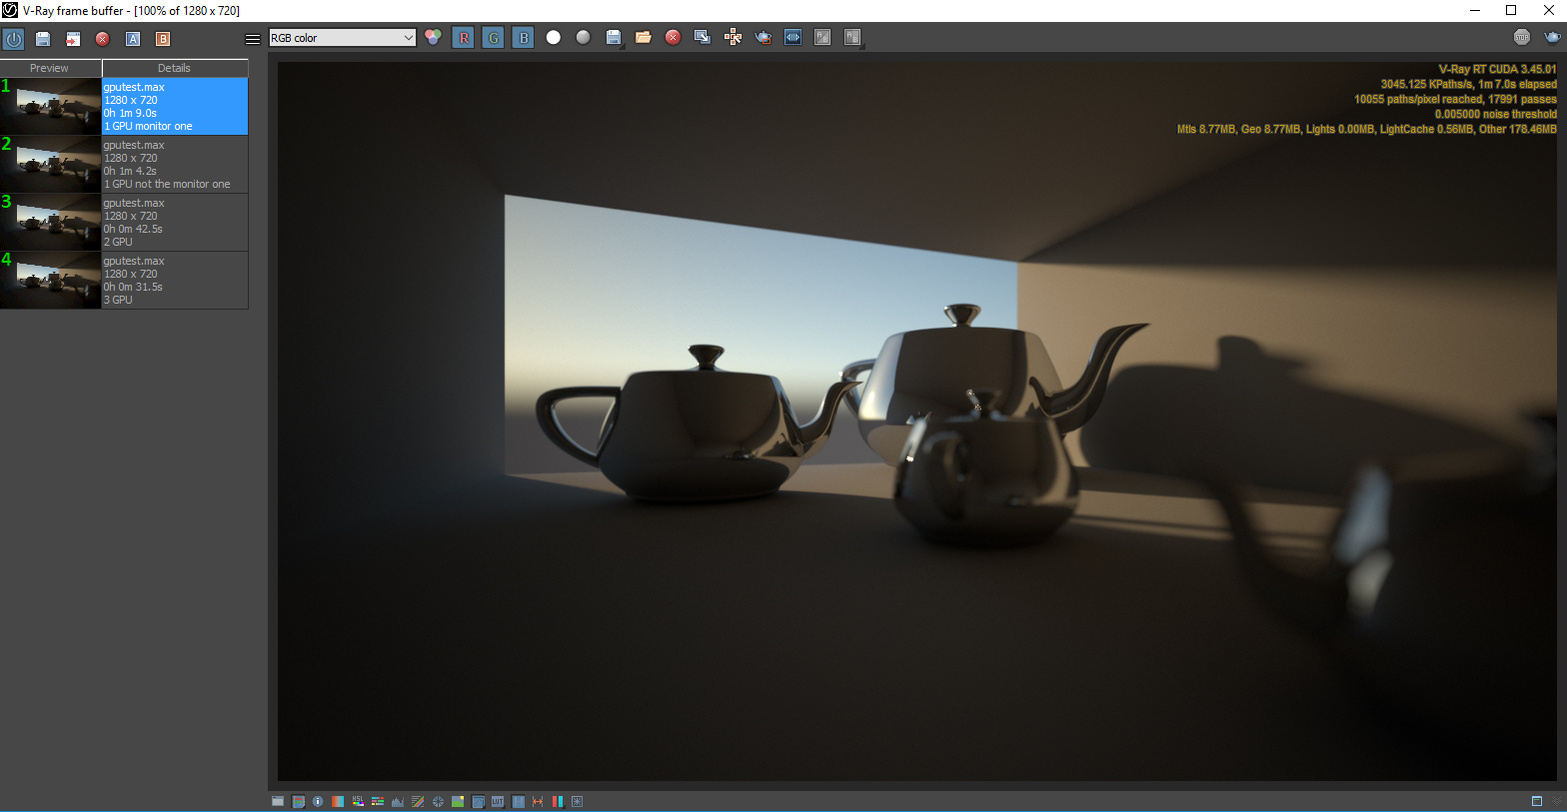 GPU scaling not as expected with Vray vs Redshift - Chaos Group Forums